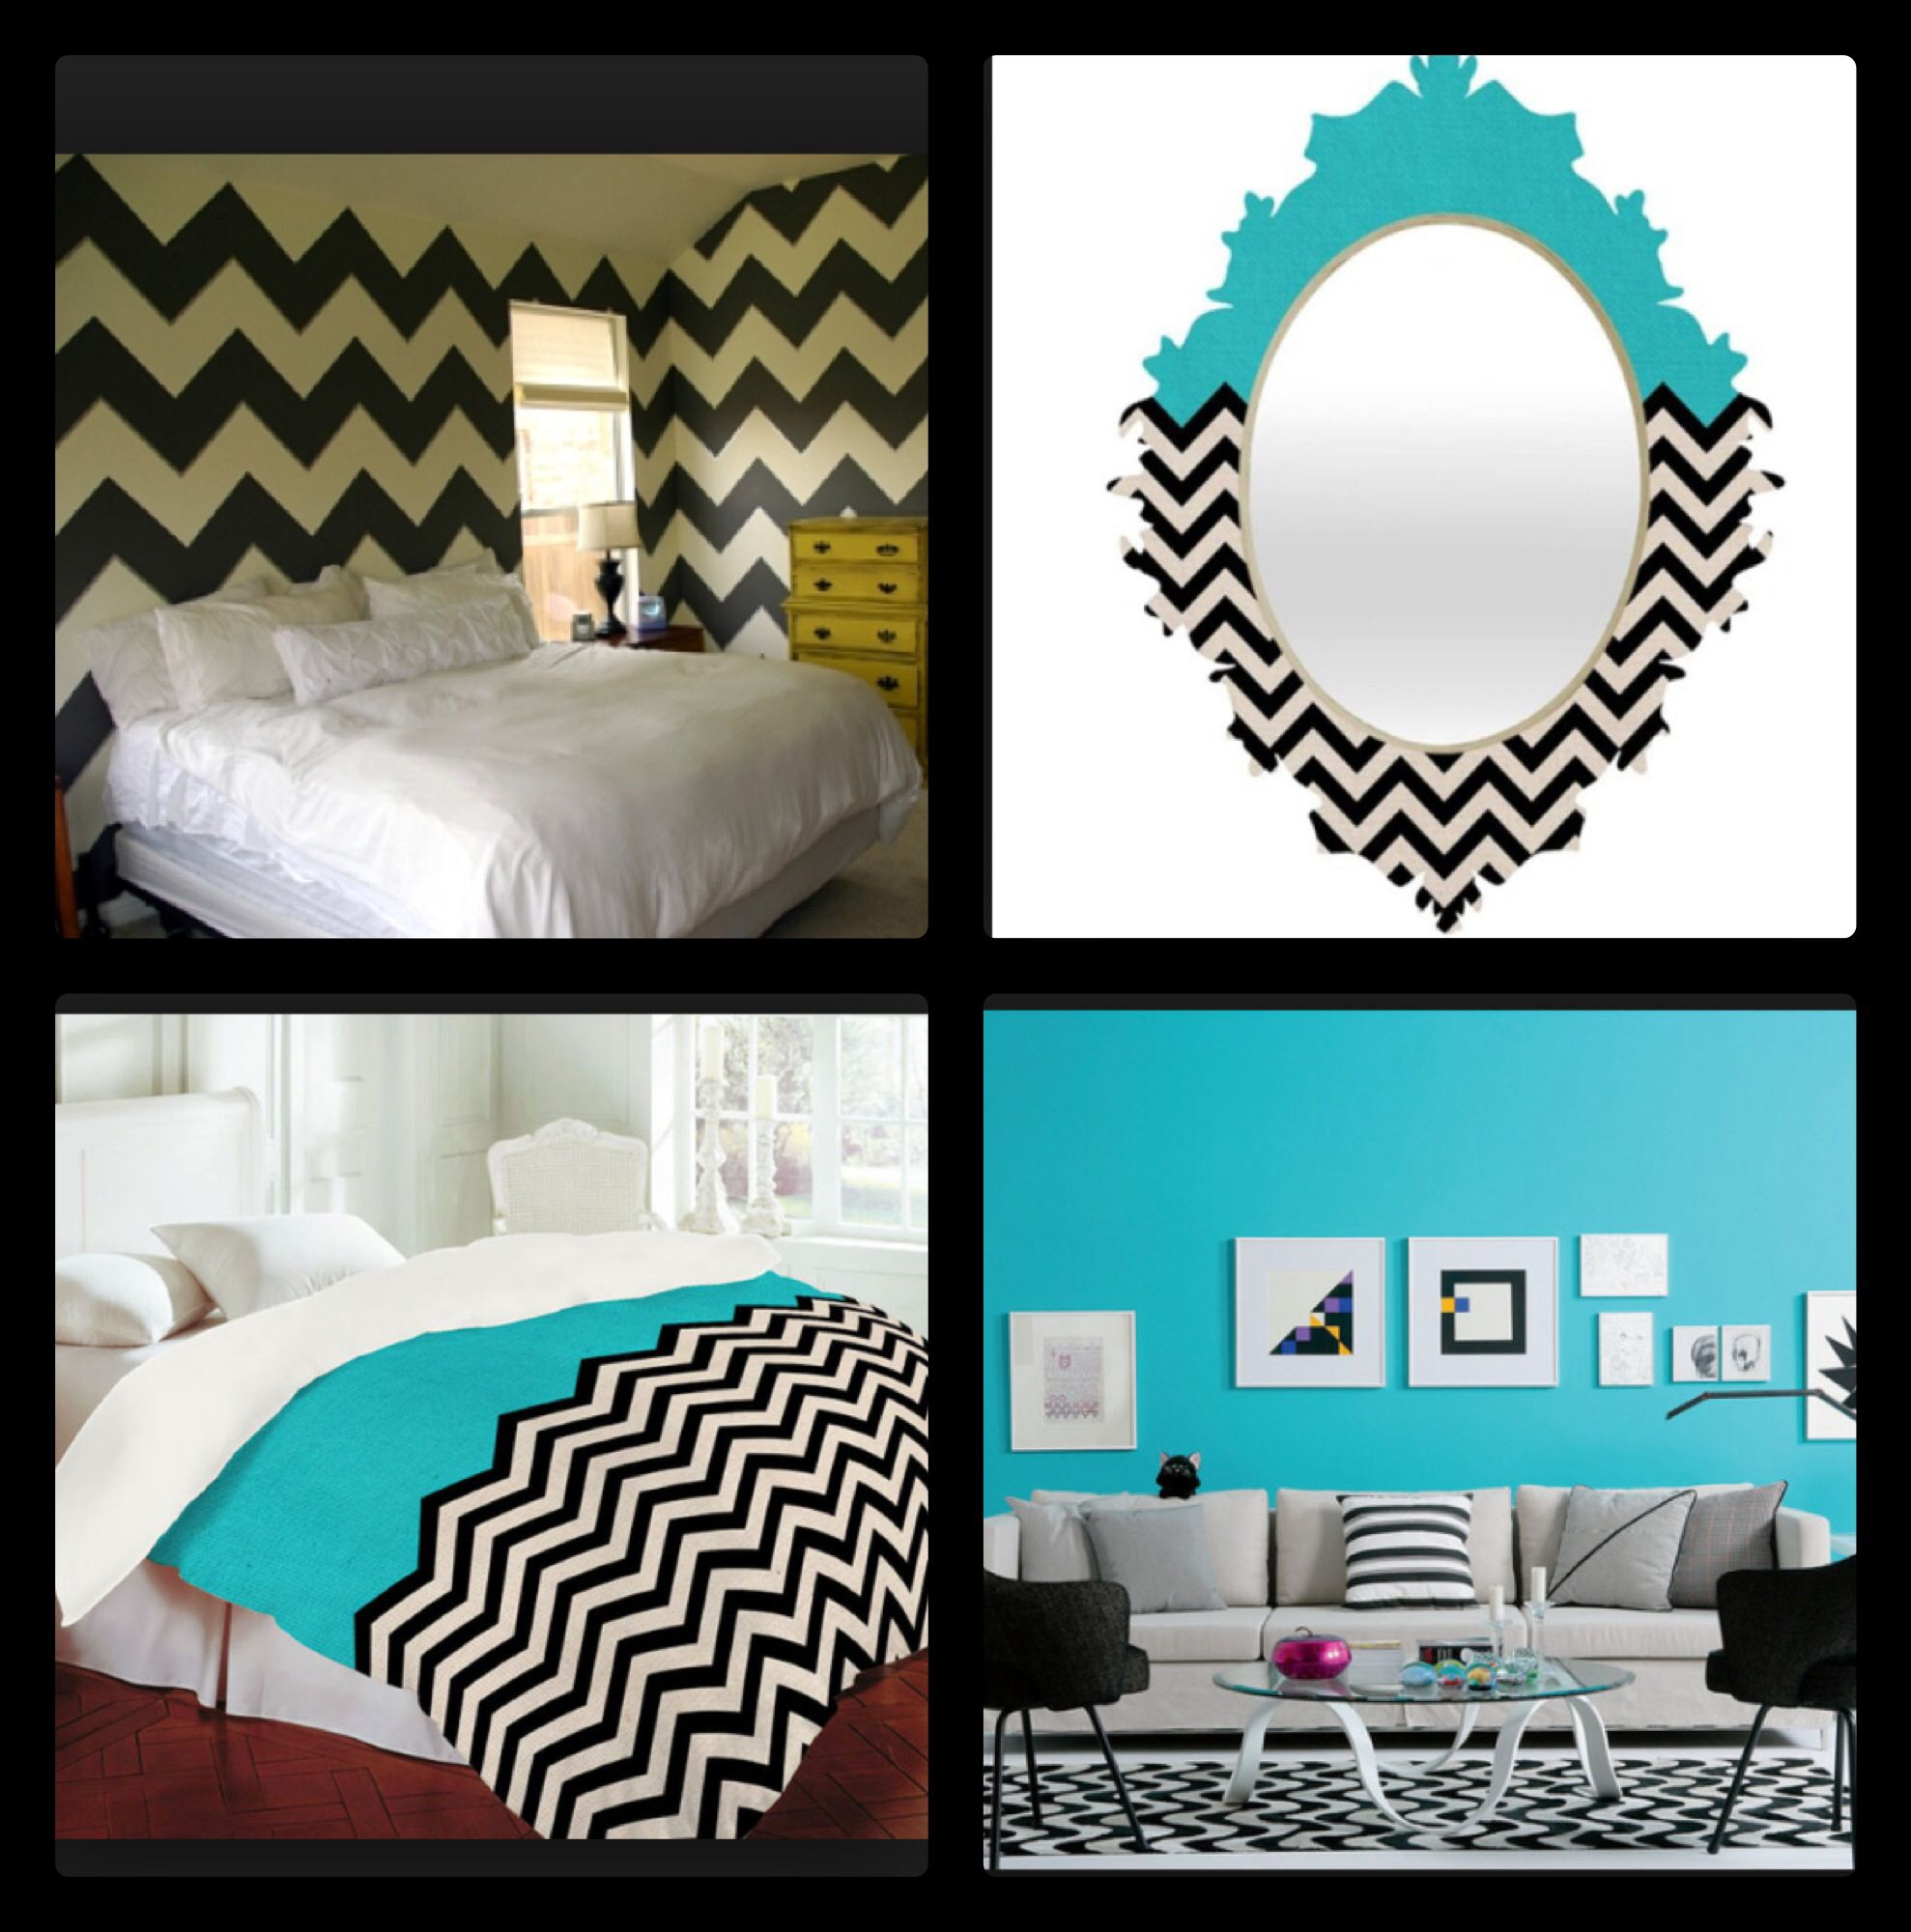 turquoise, black, and white chevron room ideas | room diys